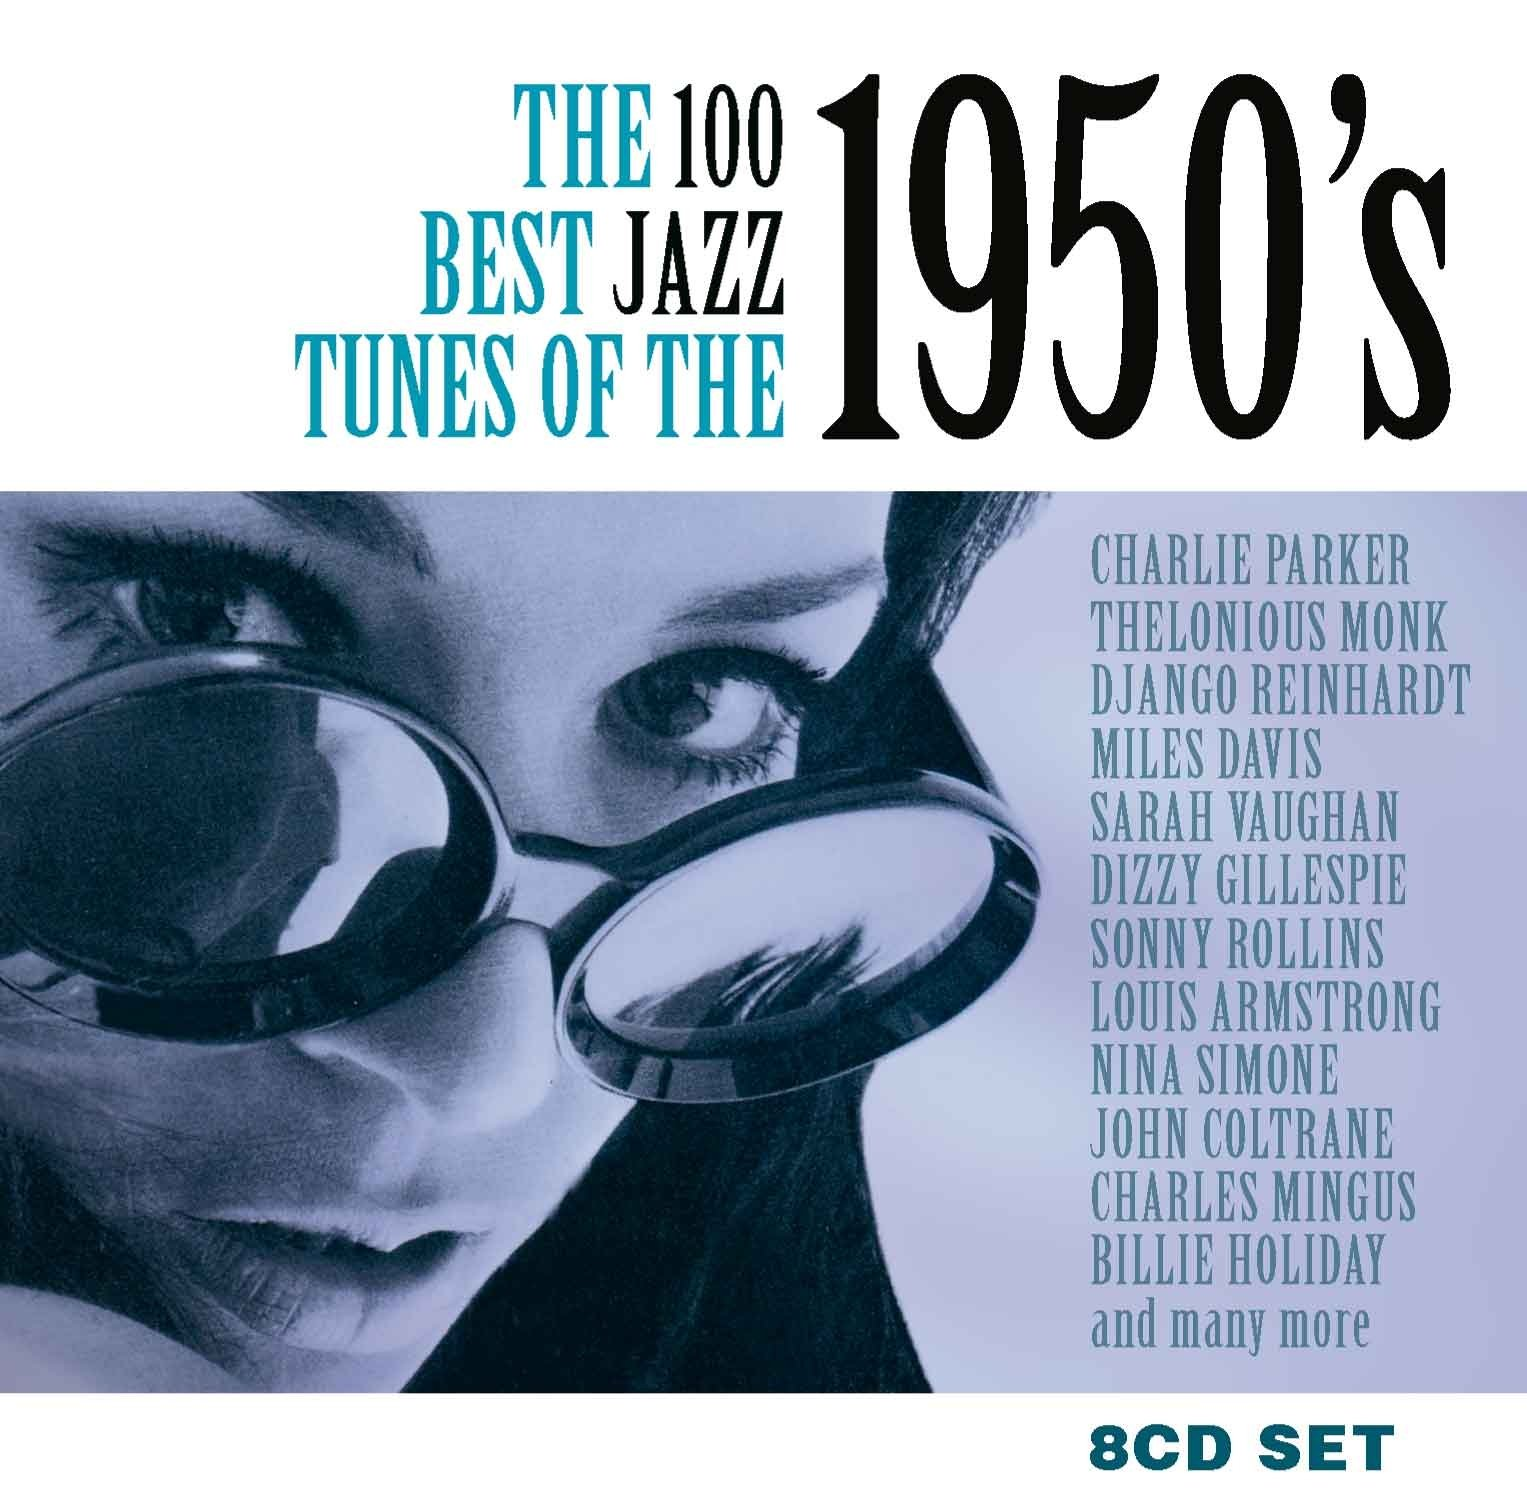 100 Best Jazz Tunes of the 1950's by Chrome Dreams